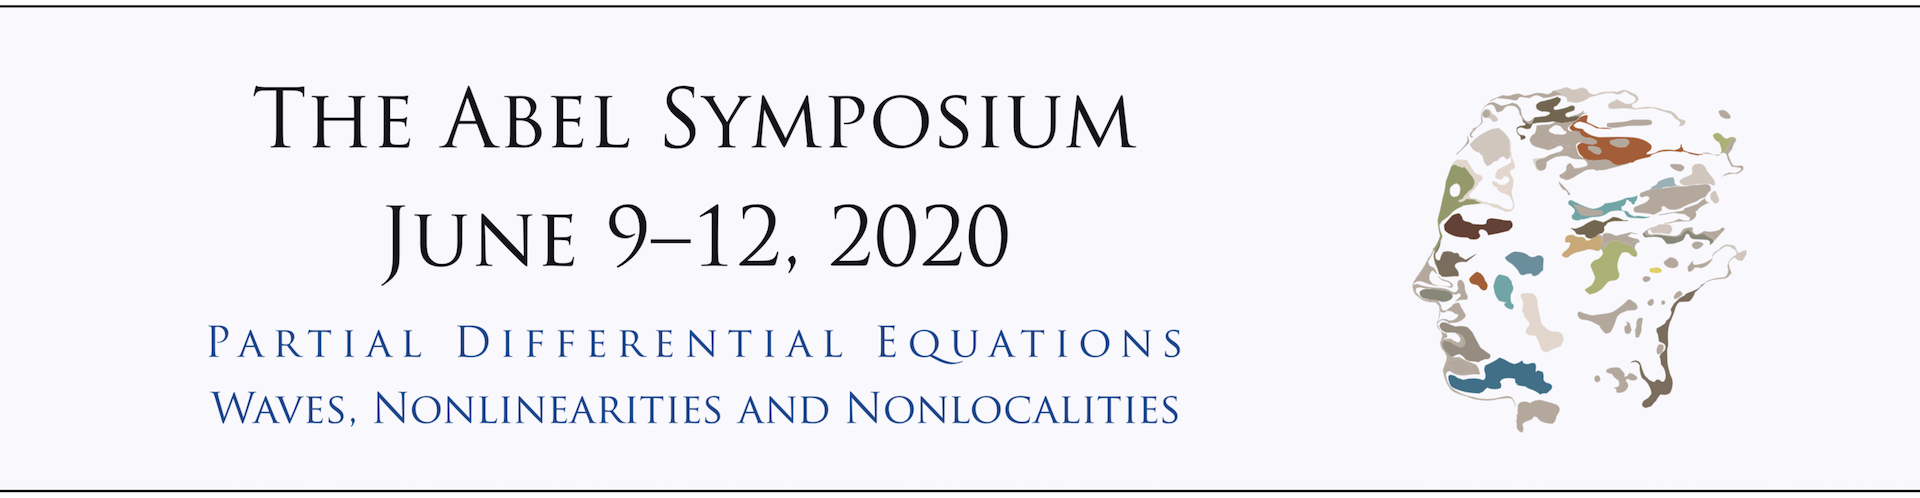 The Abel Symposium. Logo